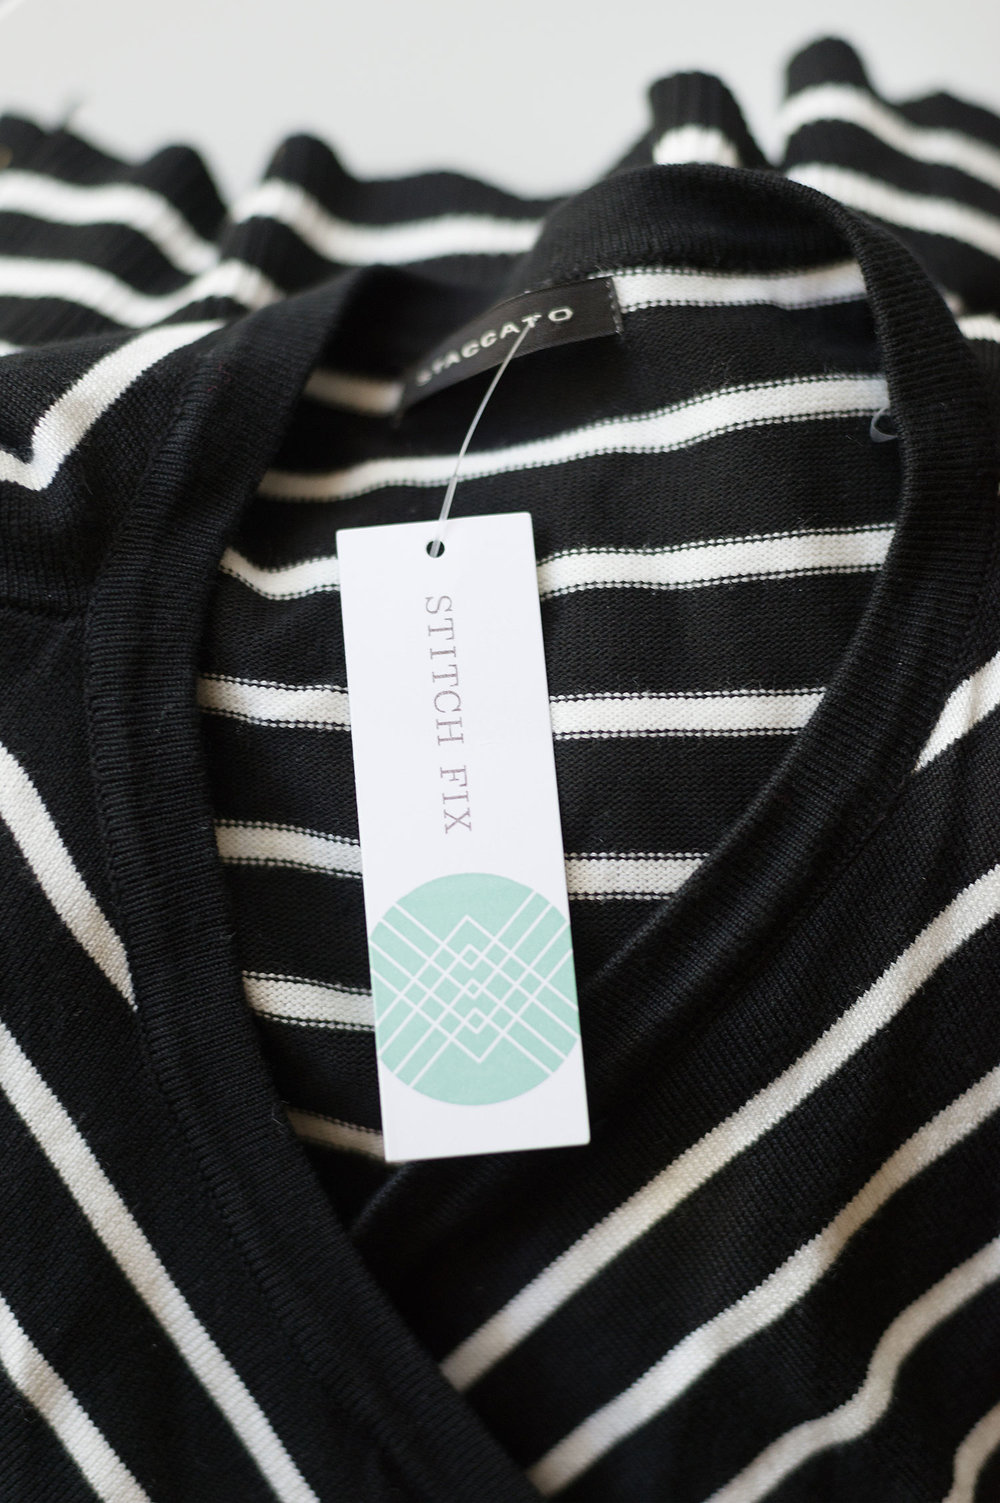 Stitch Fix Review: What I Leanred | Donya Luana